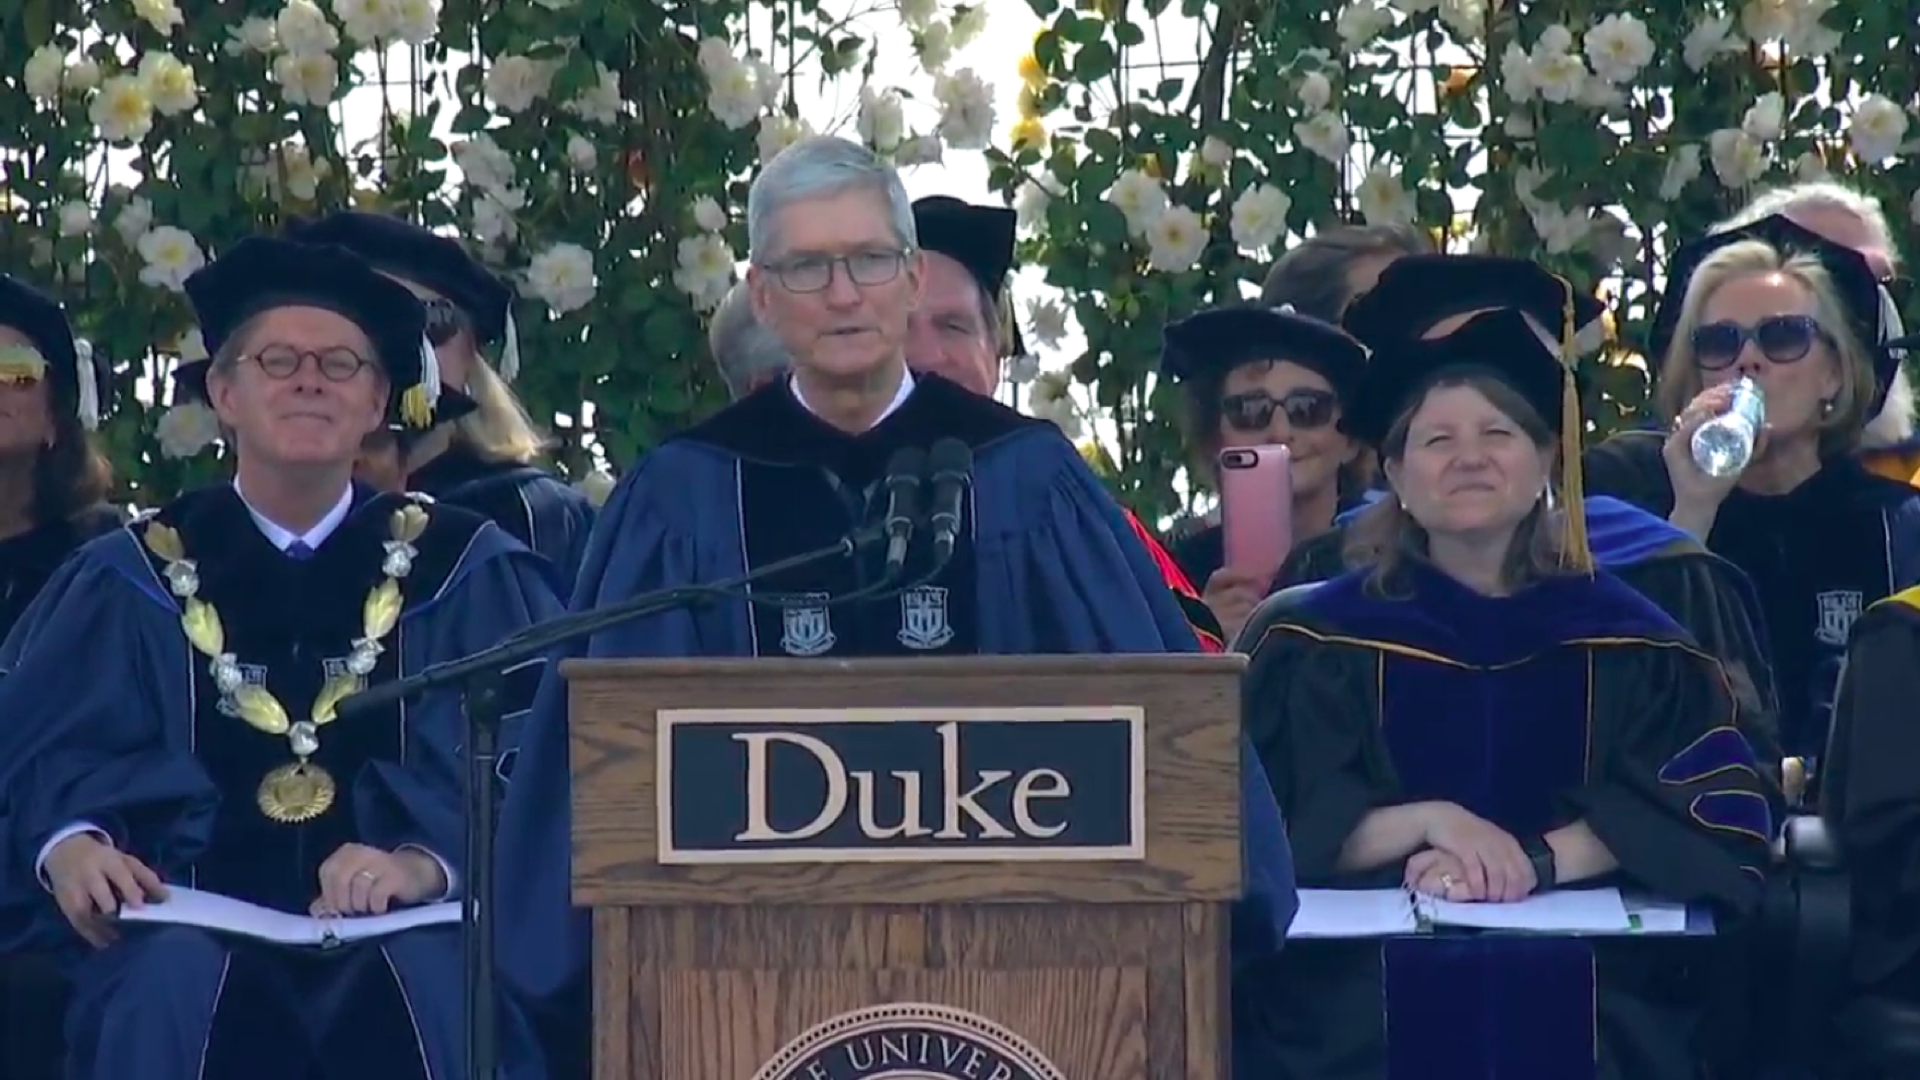 Apple CEO Tim Cook speaking at the 2018 Duke commencement.